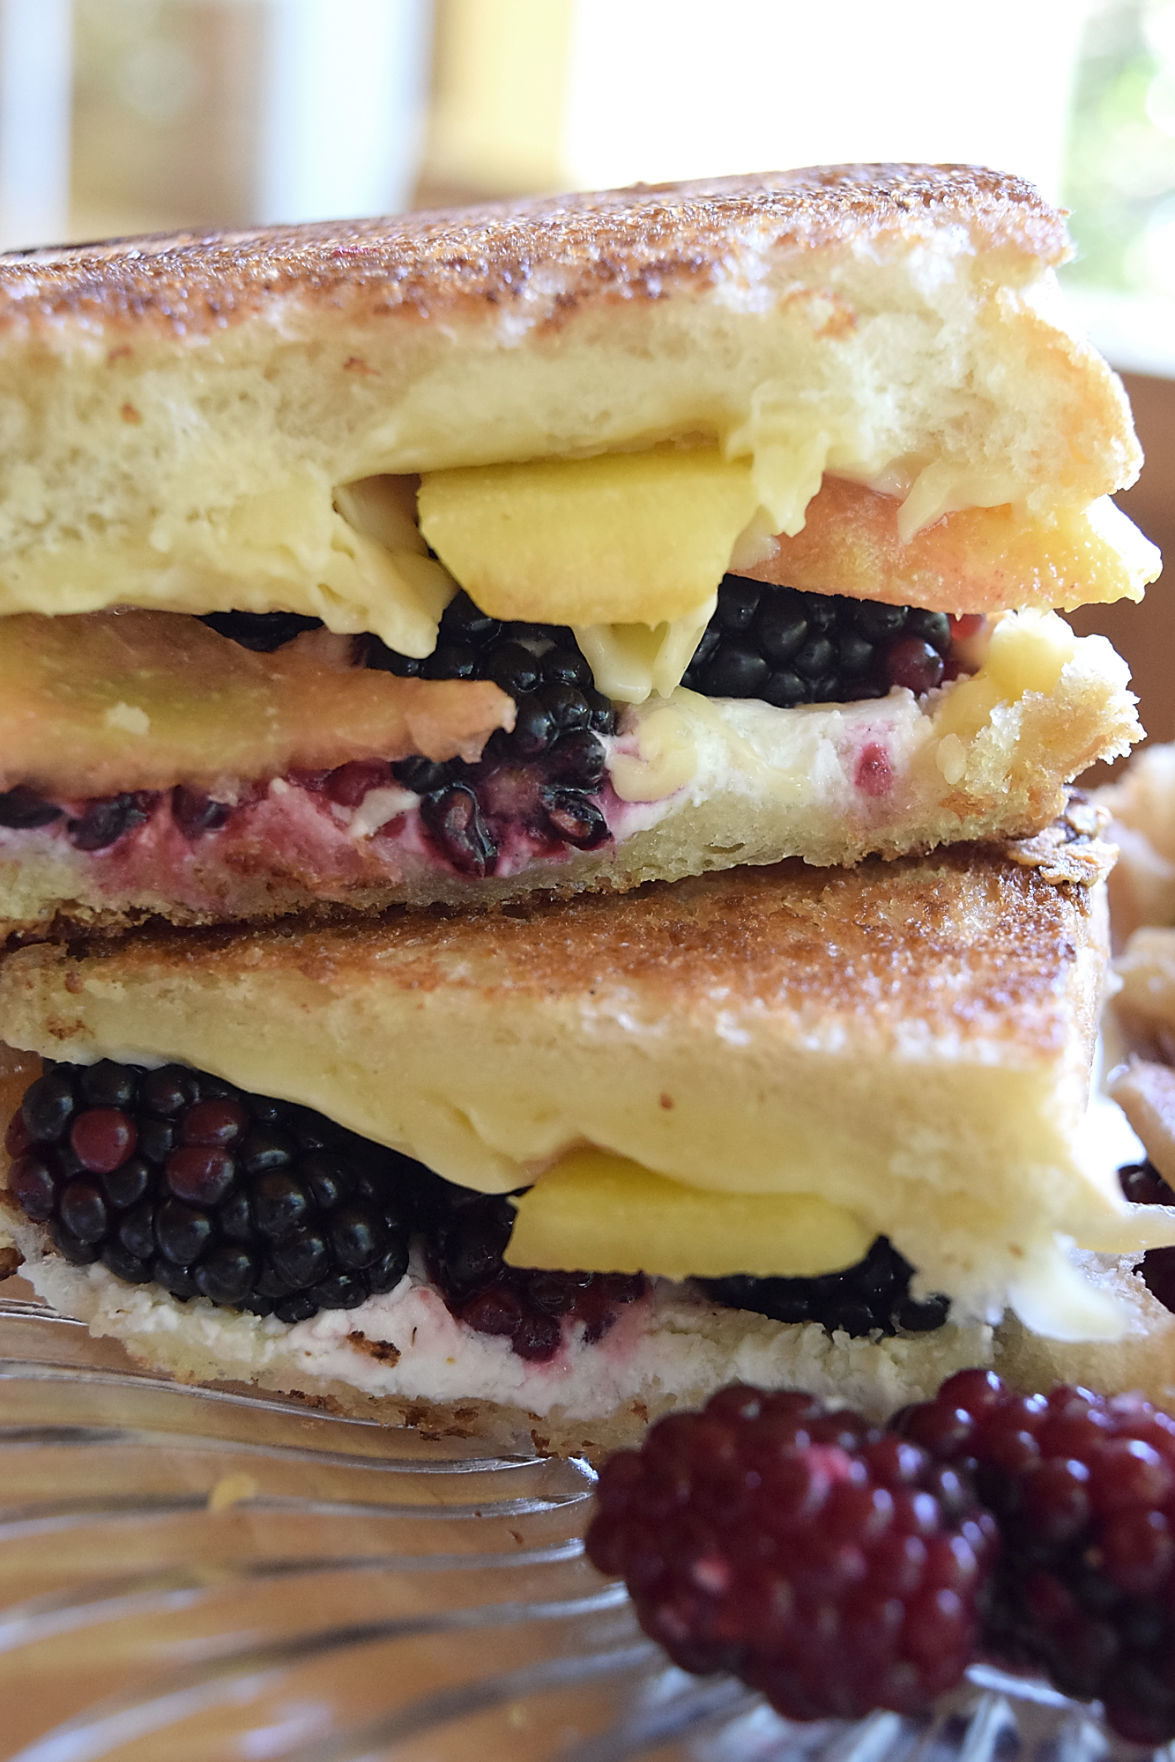 Miss Olivia's - Blackberry & Peach Grilled Cheese